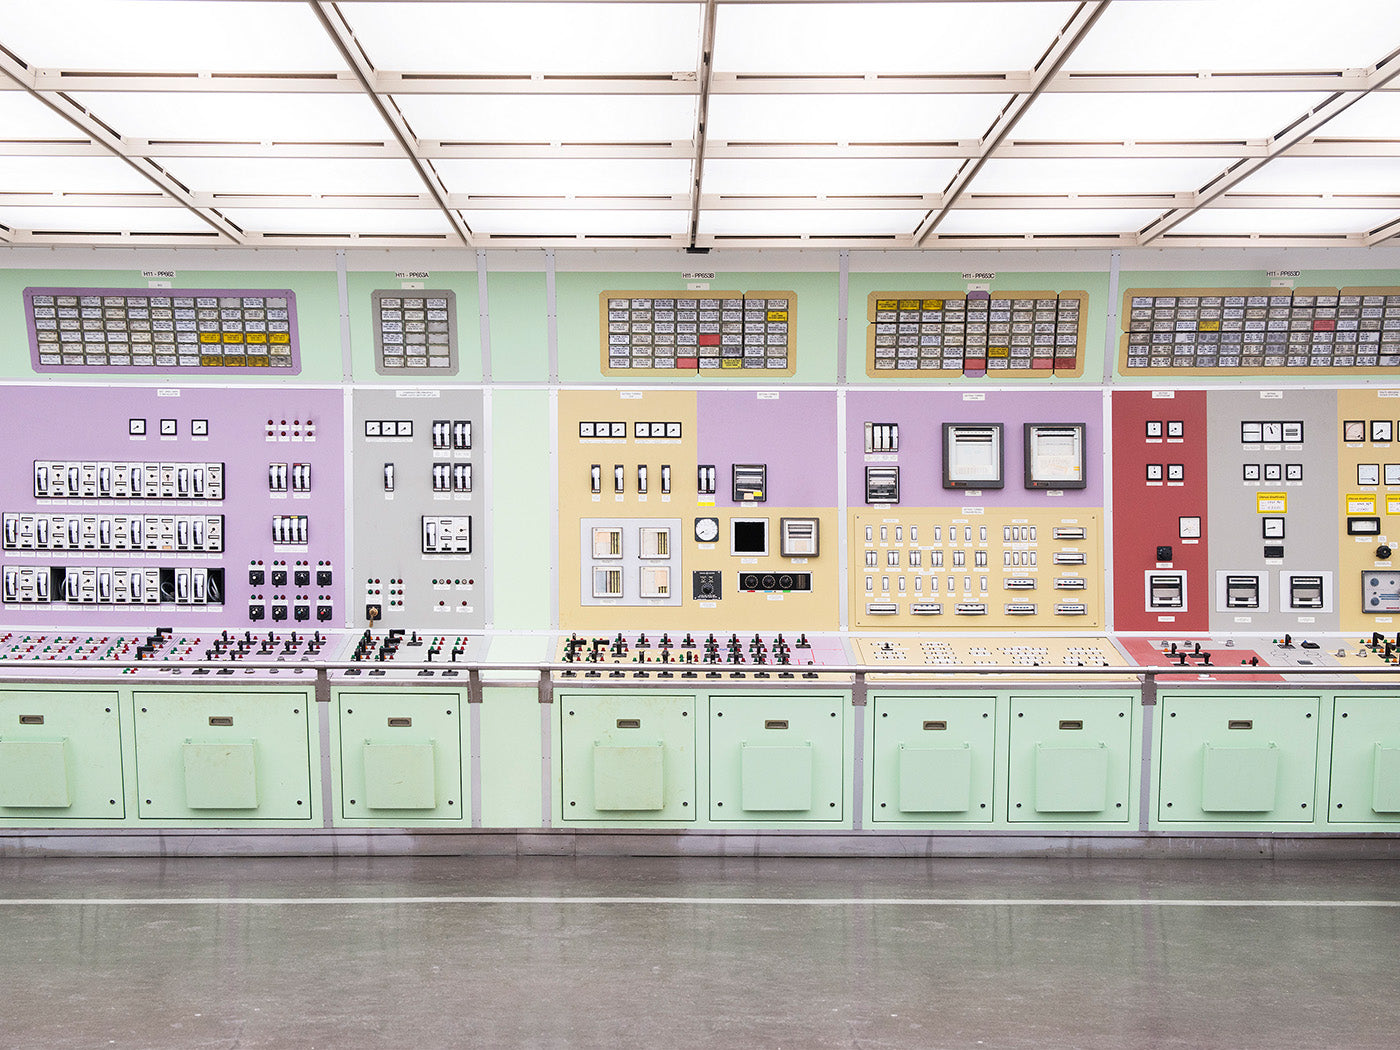 Image of the control desk at Caorso nuclear power plant, Piacenza by Mattia Balsamini